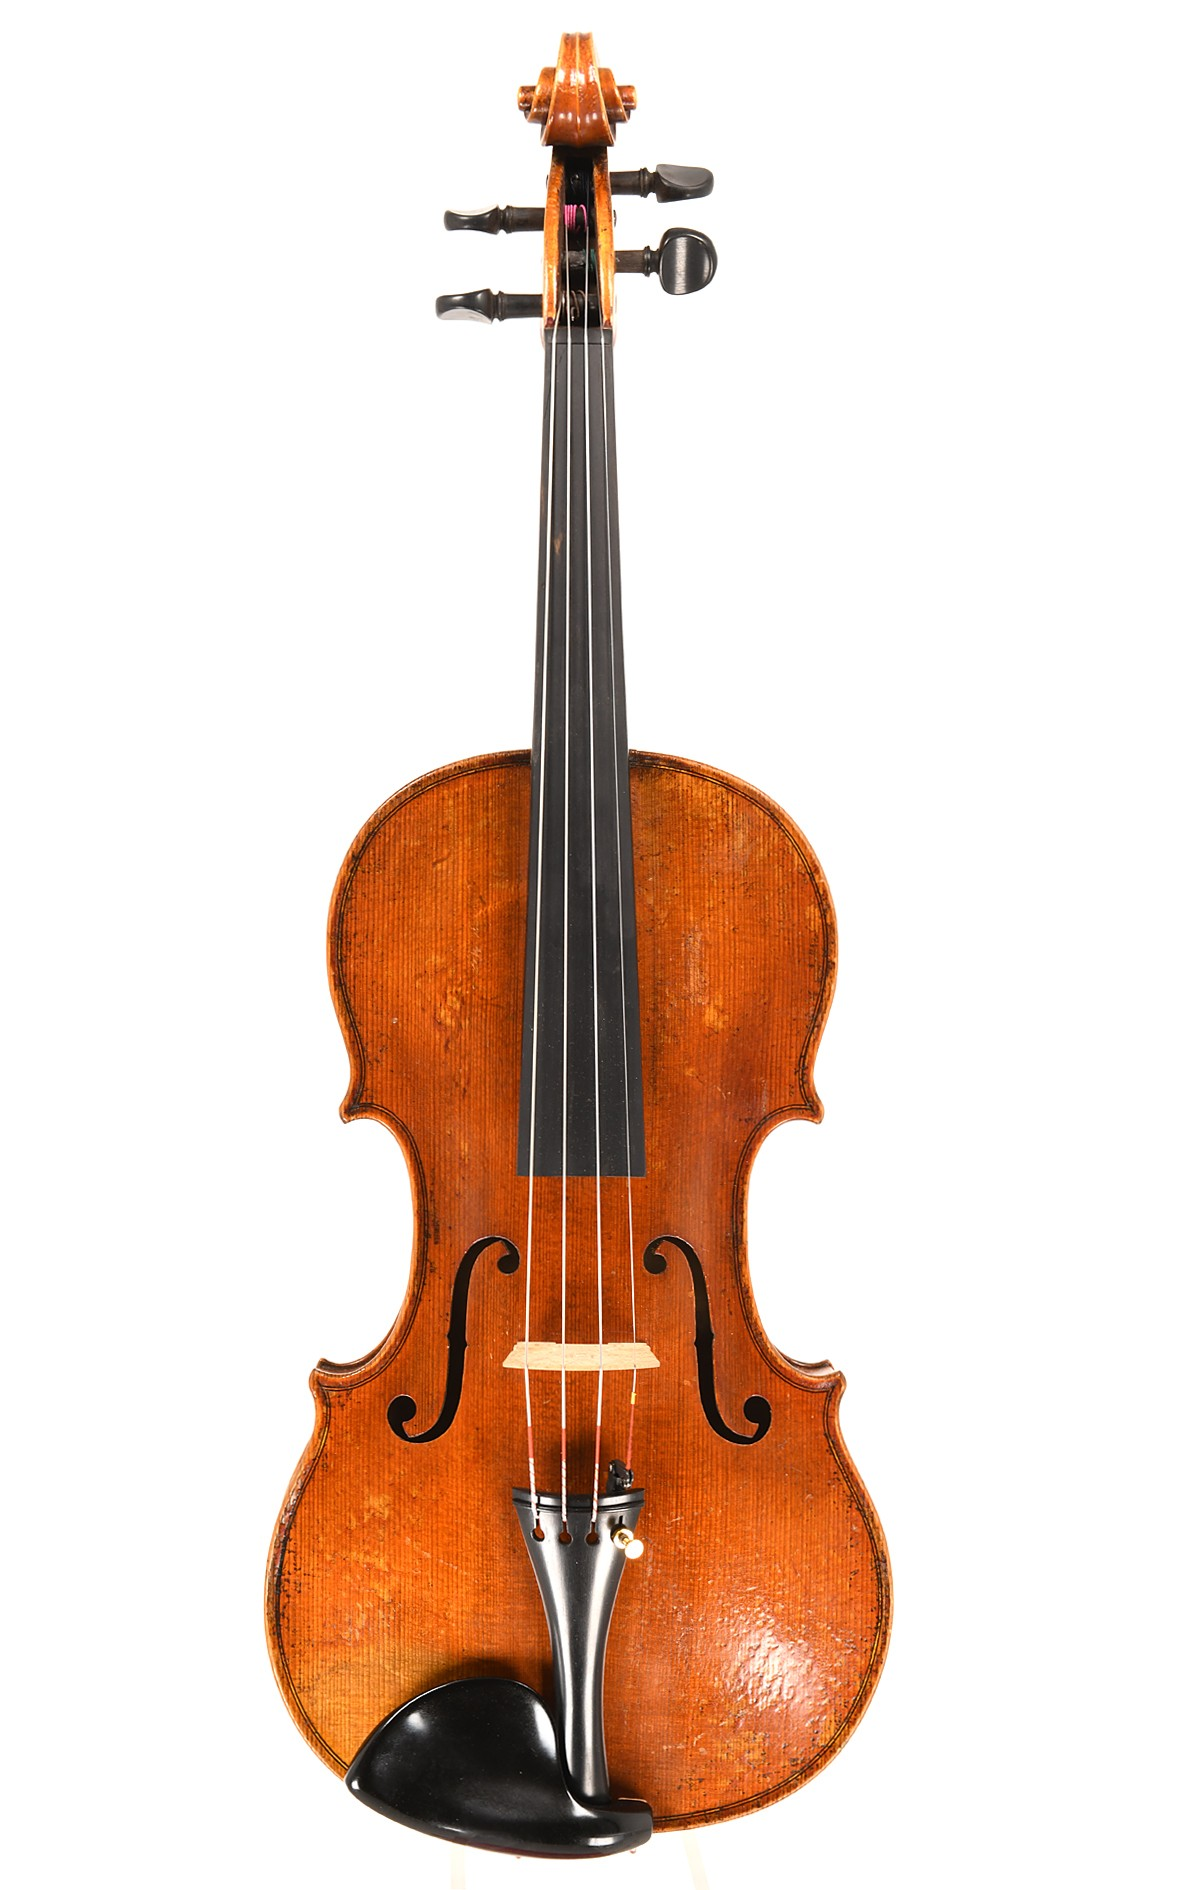 Old German violin after Jacobus Stainer, circa 1930